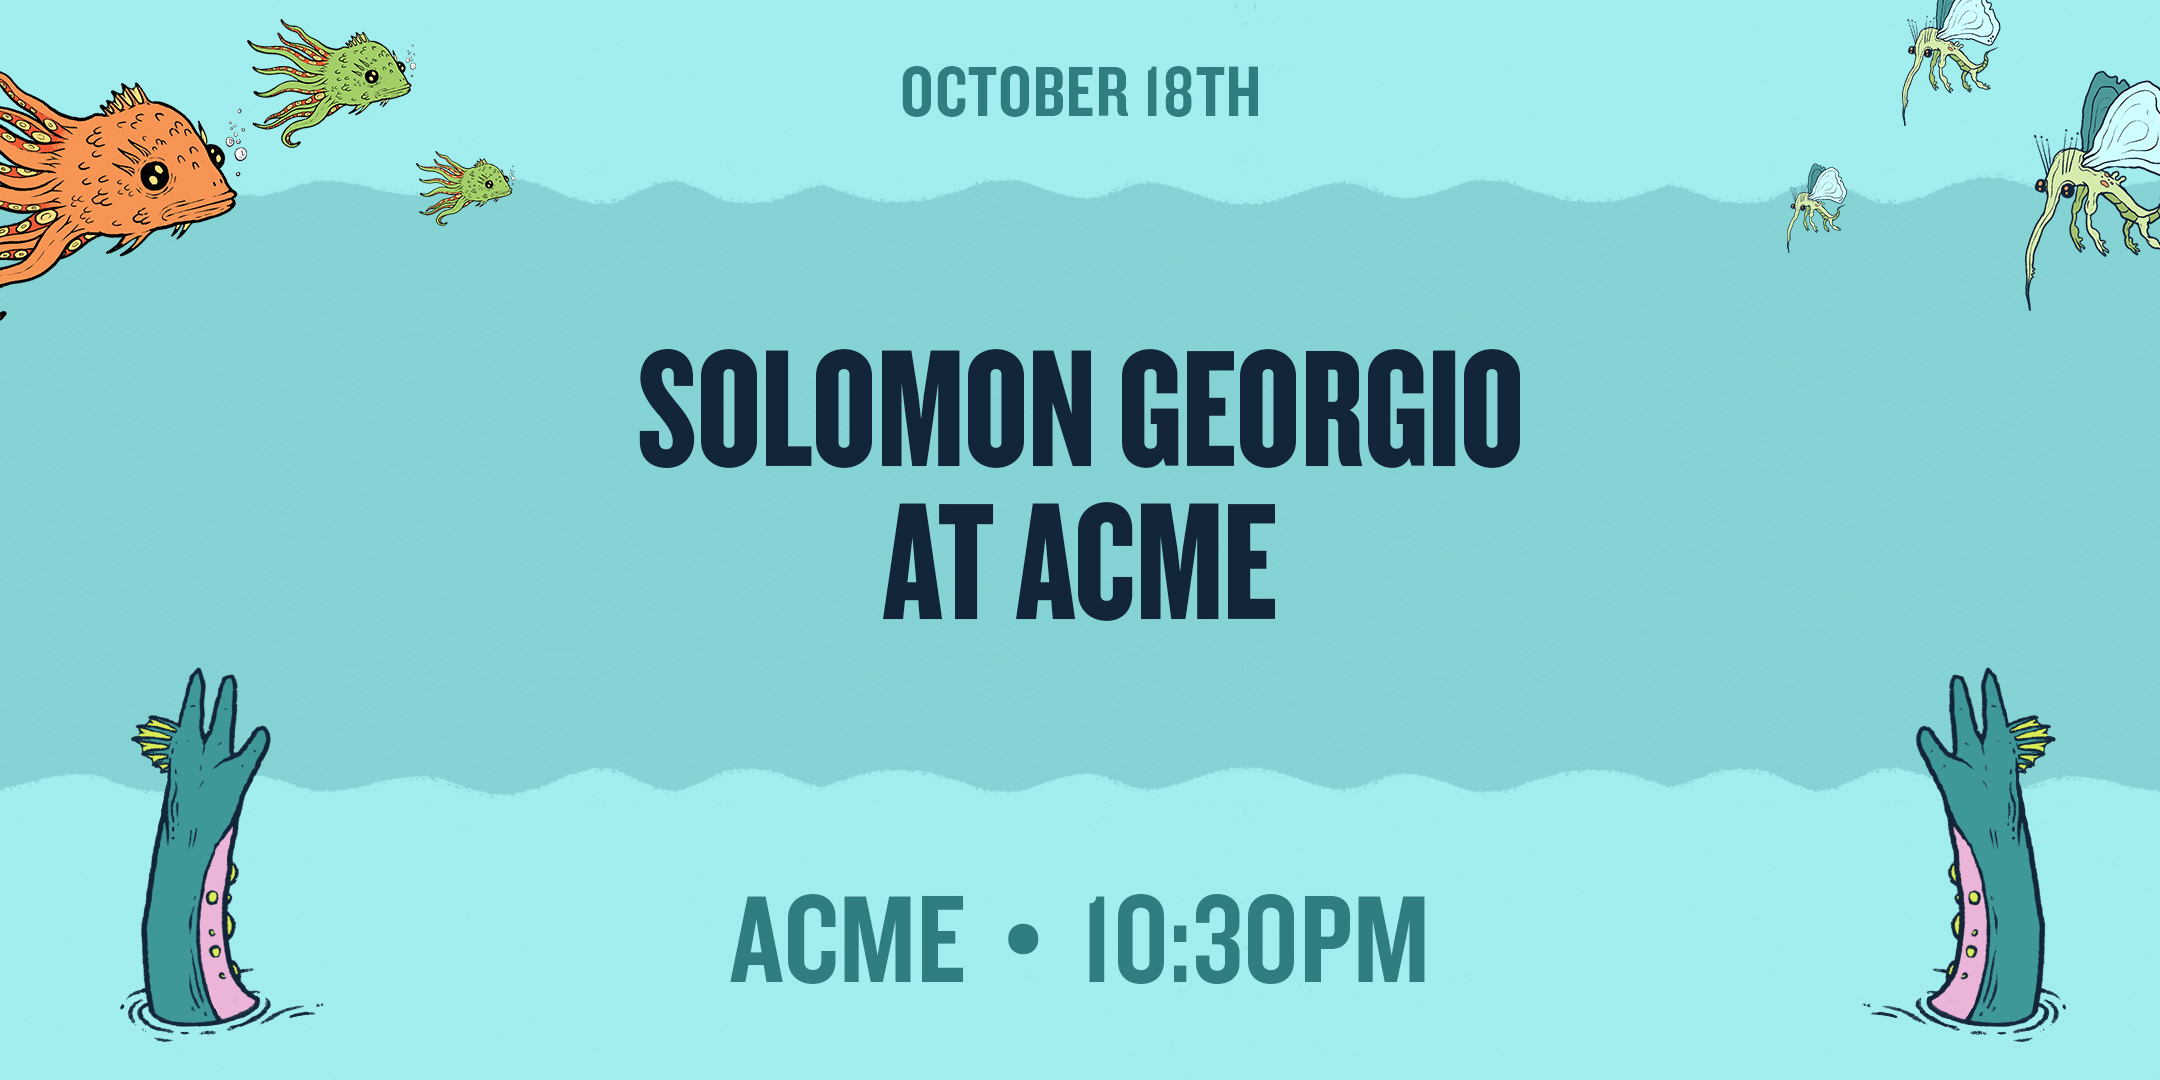 oct18-solomon_georgio_at_acme.jpg